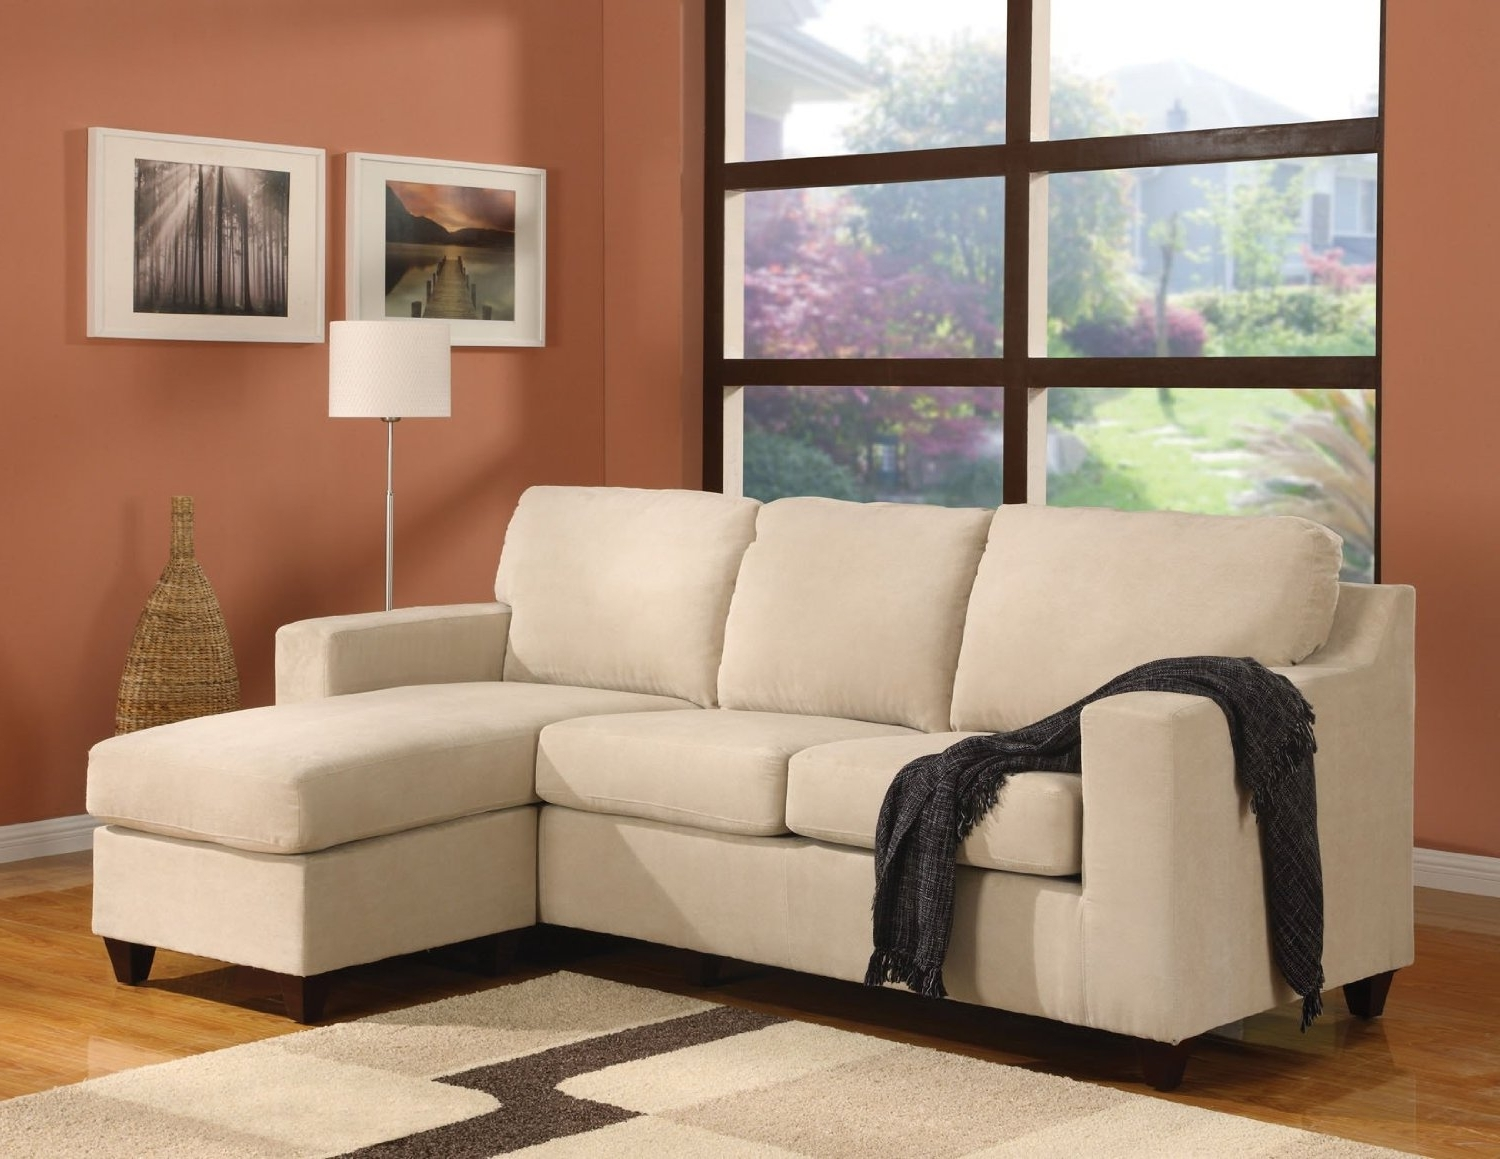 Couches With Chaise Lounge With Regard To Trendy Awesome Small Sectional Sofa With Chaise Lounge Chairs (View 14 of 15)